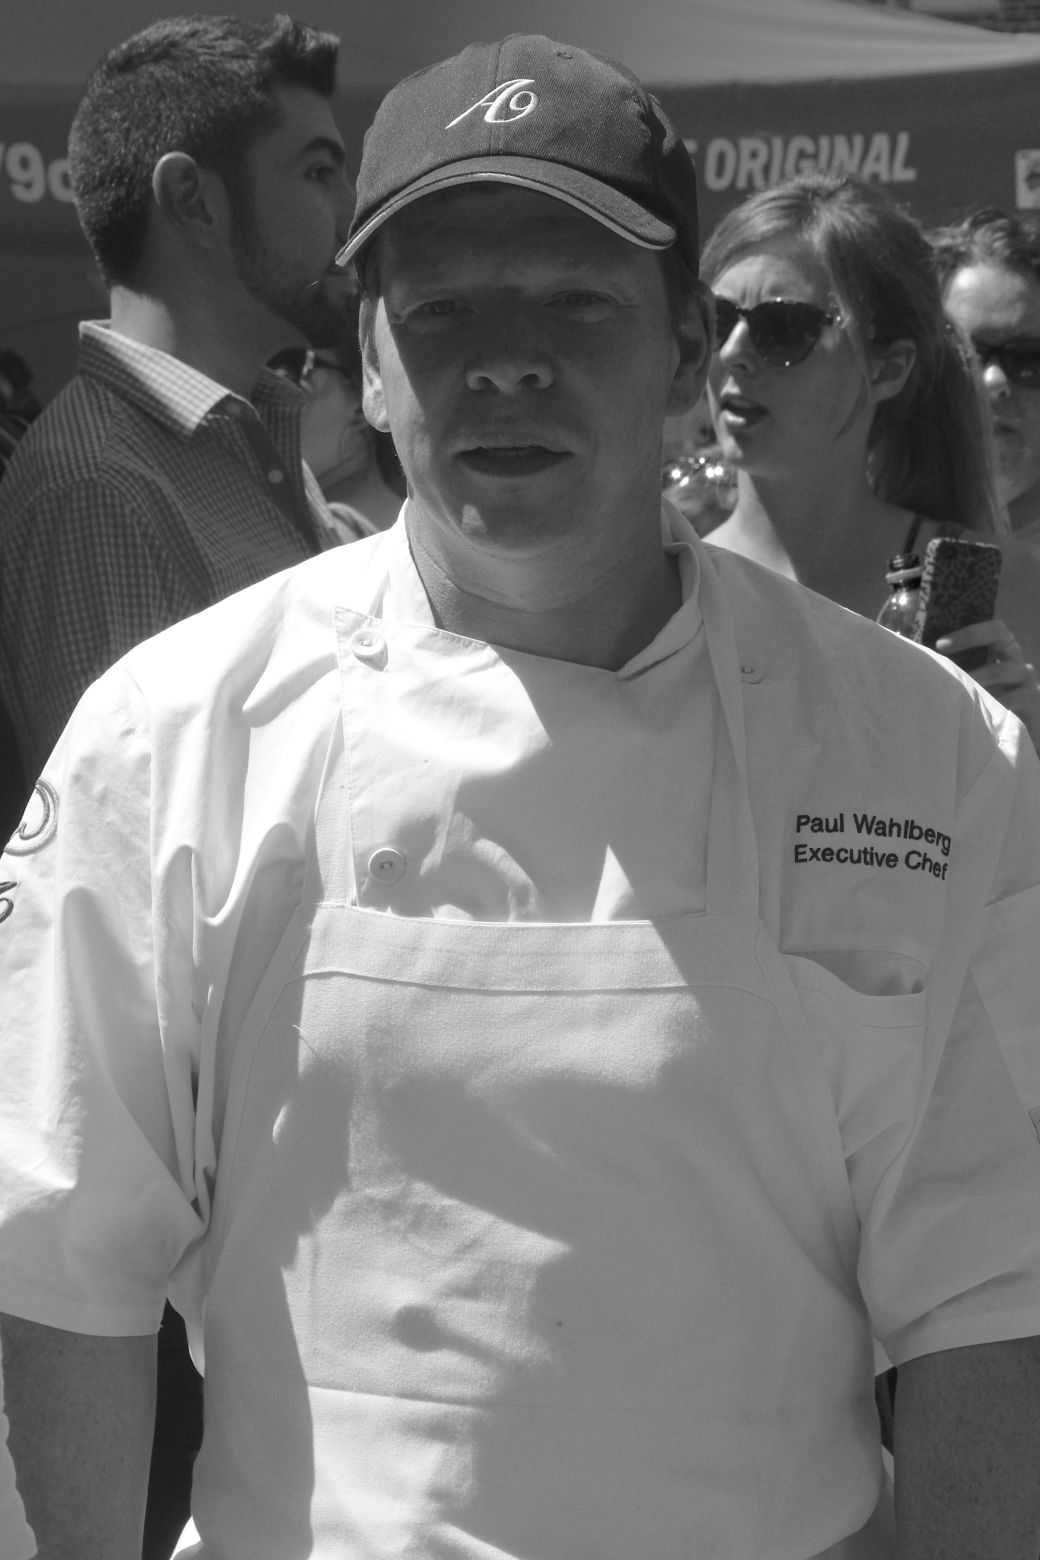 boston faneuil hall july 26 wahlberg wahlburgers promotion paul wahlberg 2